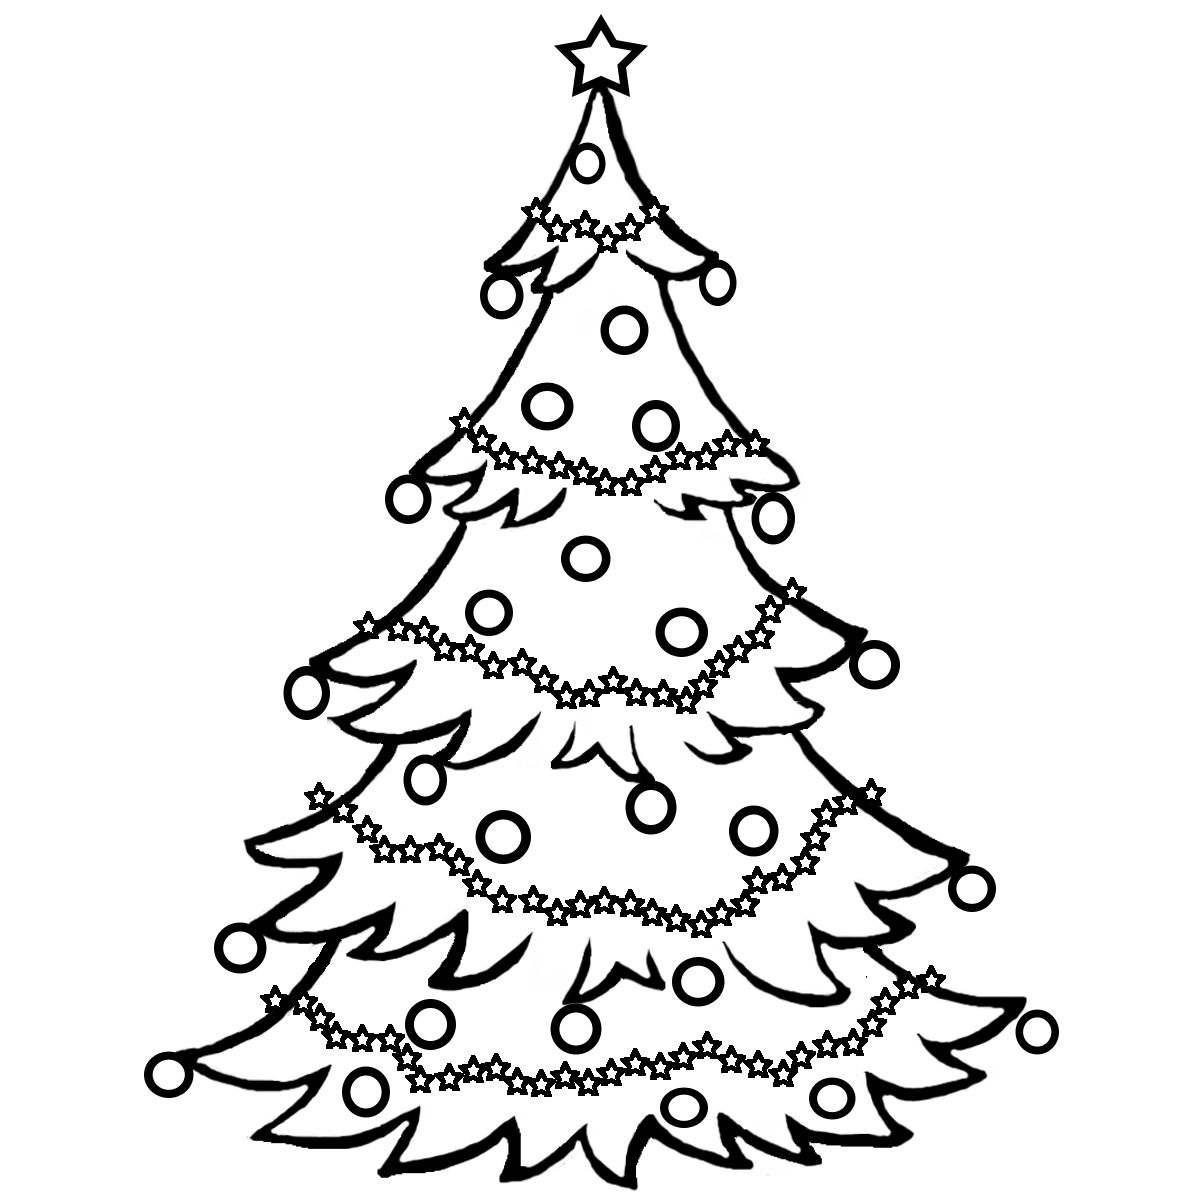 Christmas Coloring Pages Christmas Clip Art Clip Art For Teachers Parents St Christmas Tree Coloring Page Christmas Tree Drawing Christmas Coloring Pages